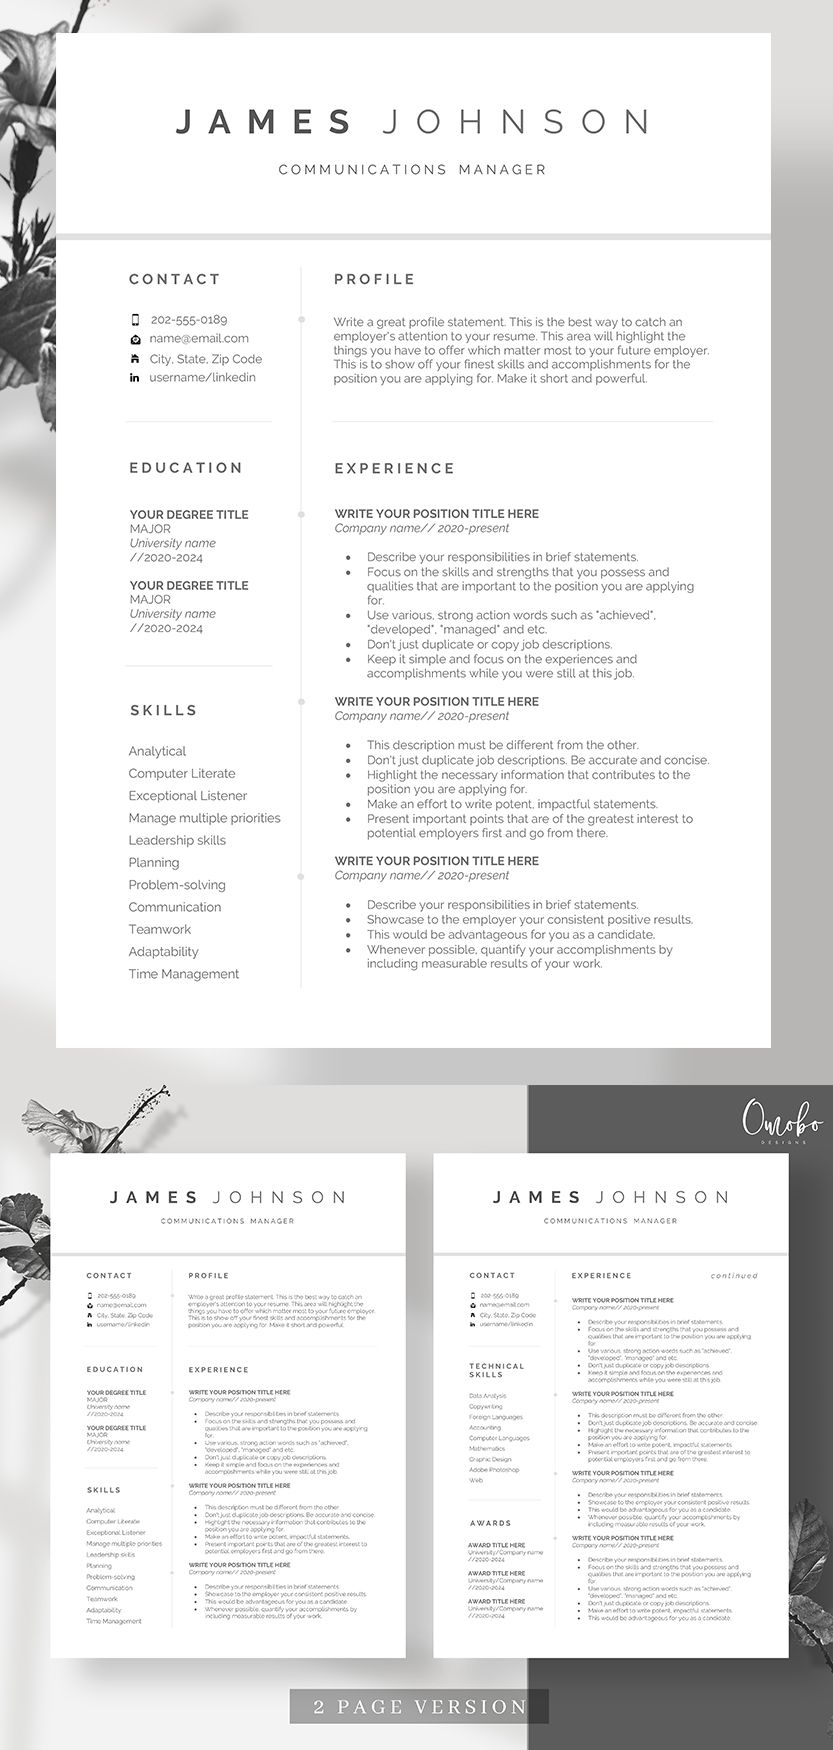 Resume template, Resume, Professional resume template